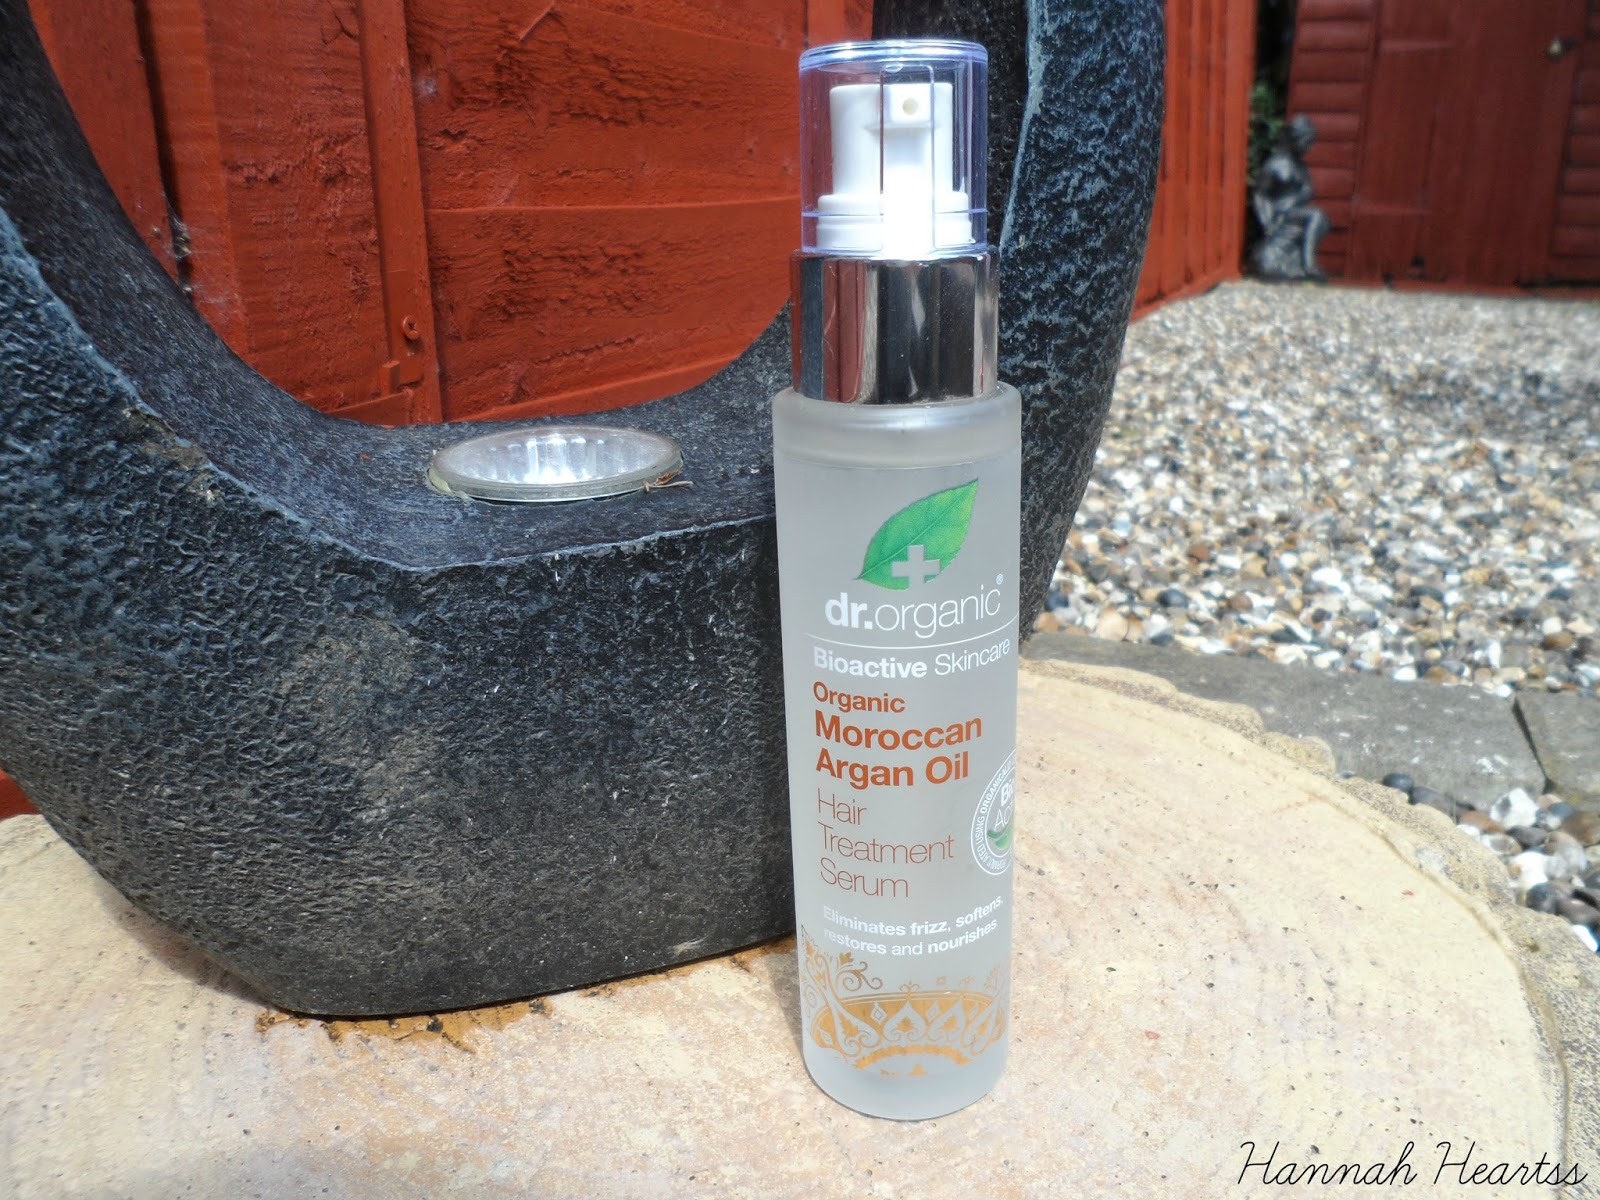 Dr Organic Moroccan Argan Oil Hair Treatment